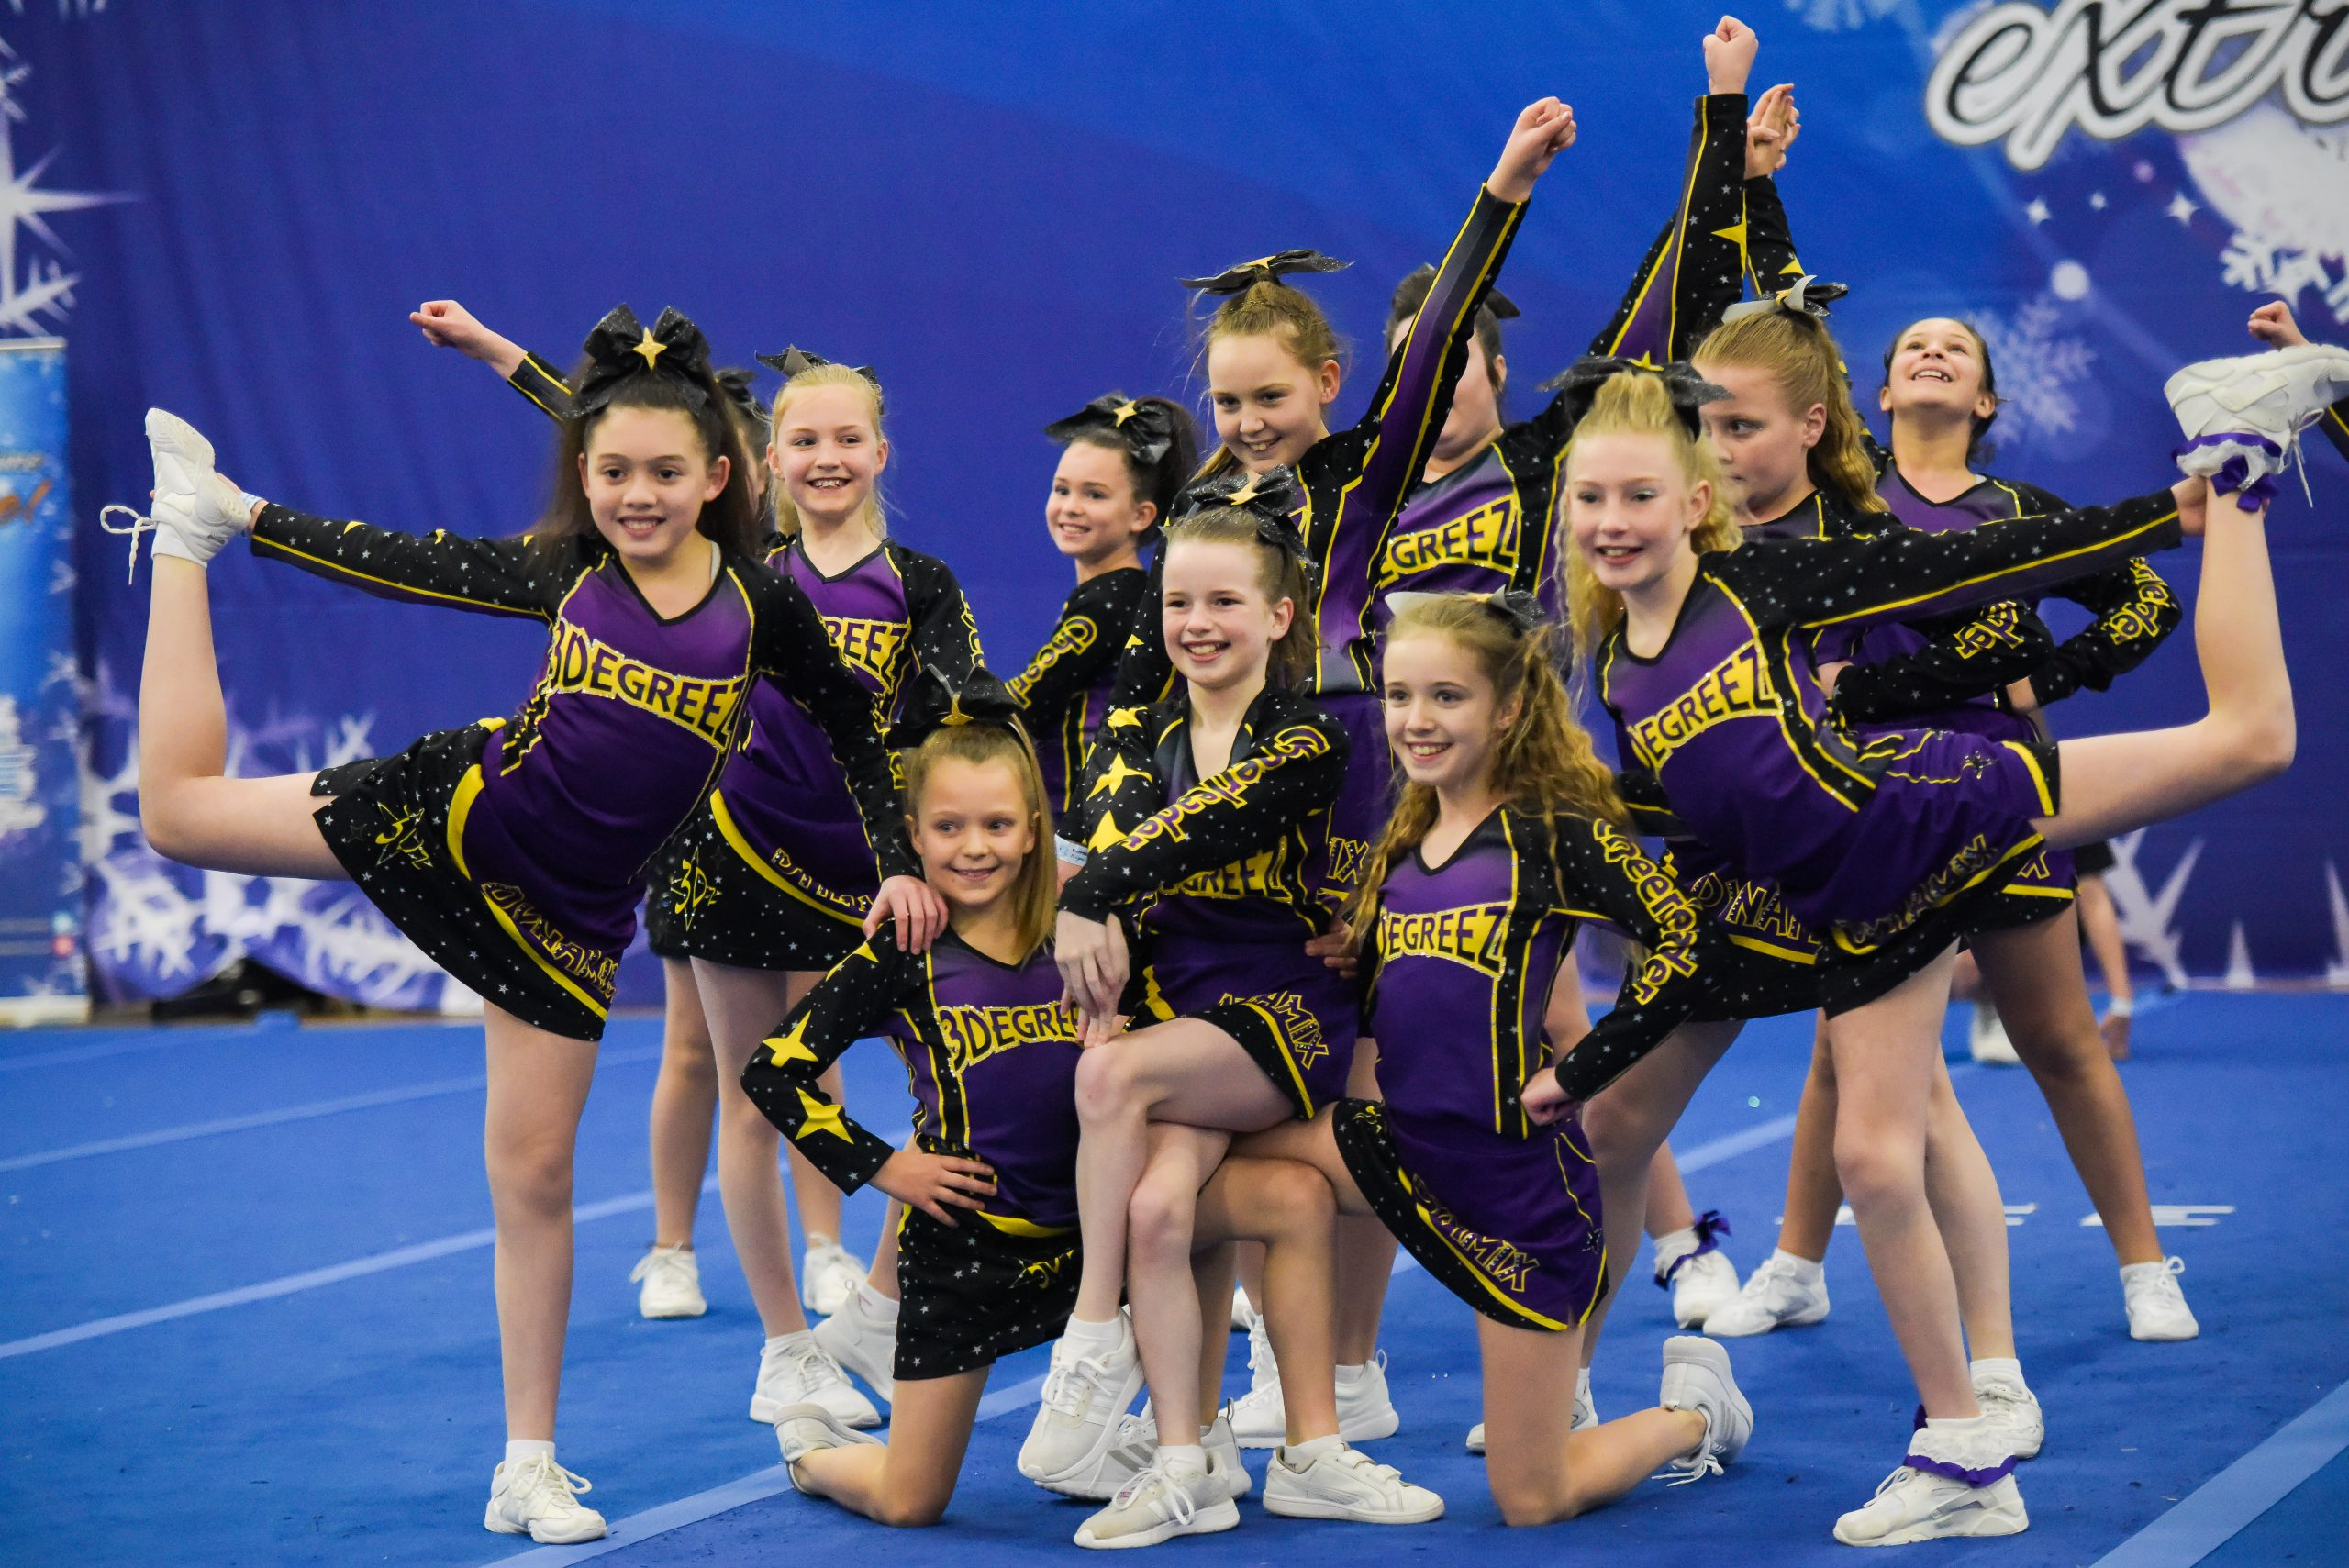 A cheer team wearing purple, black and yellow hit their end position at competition